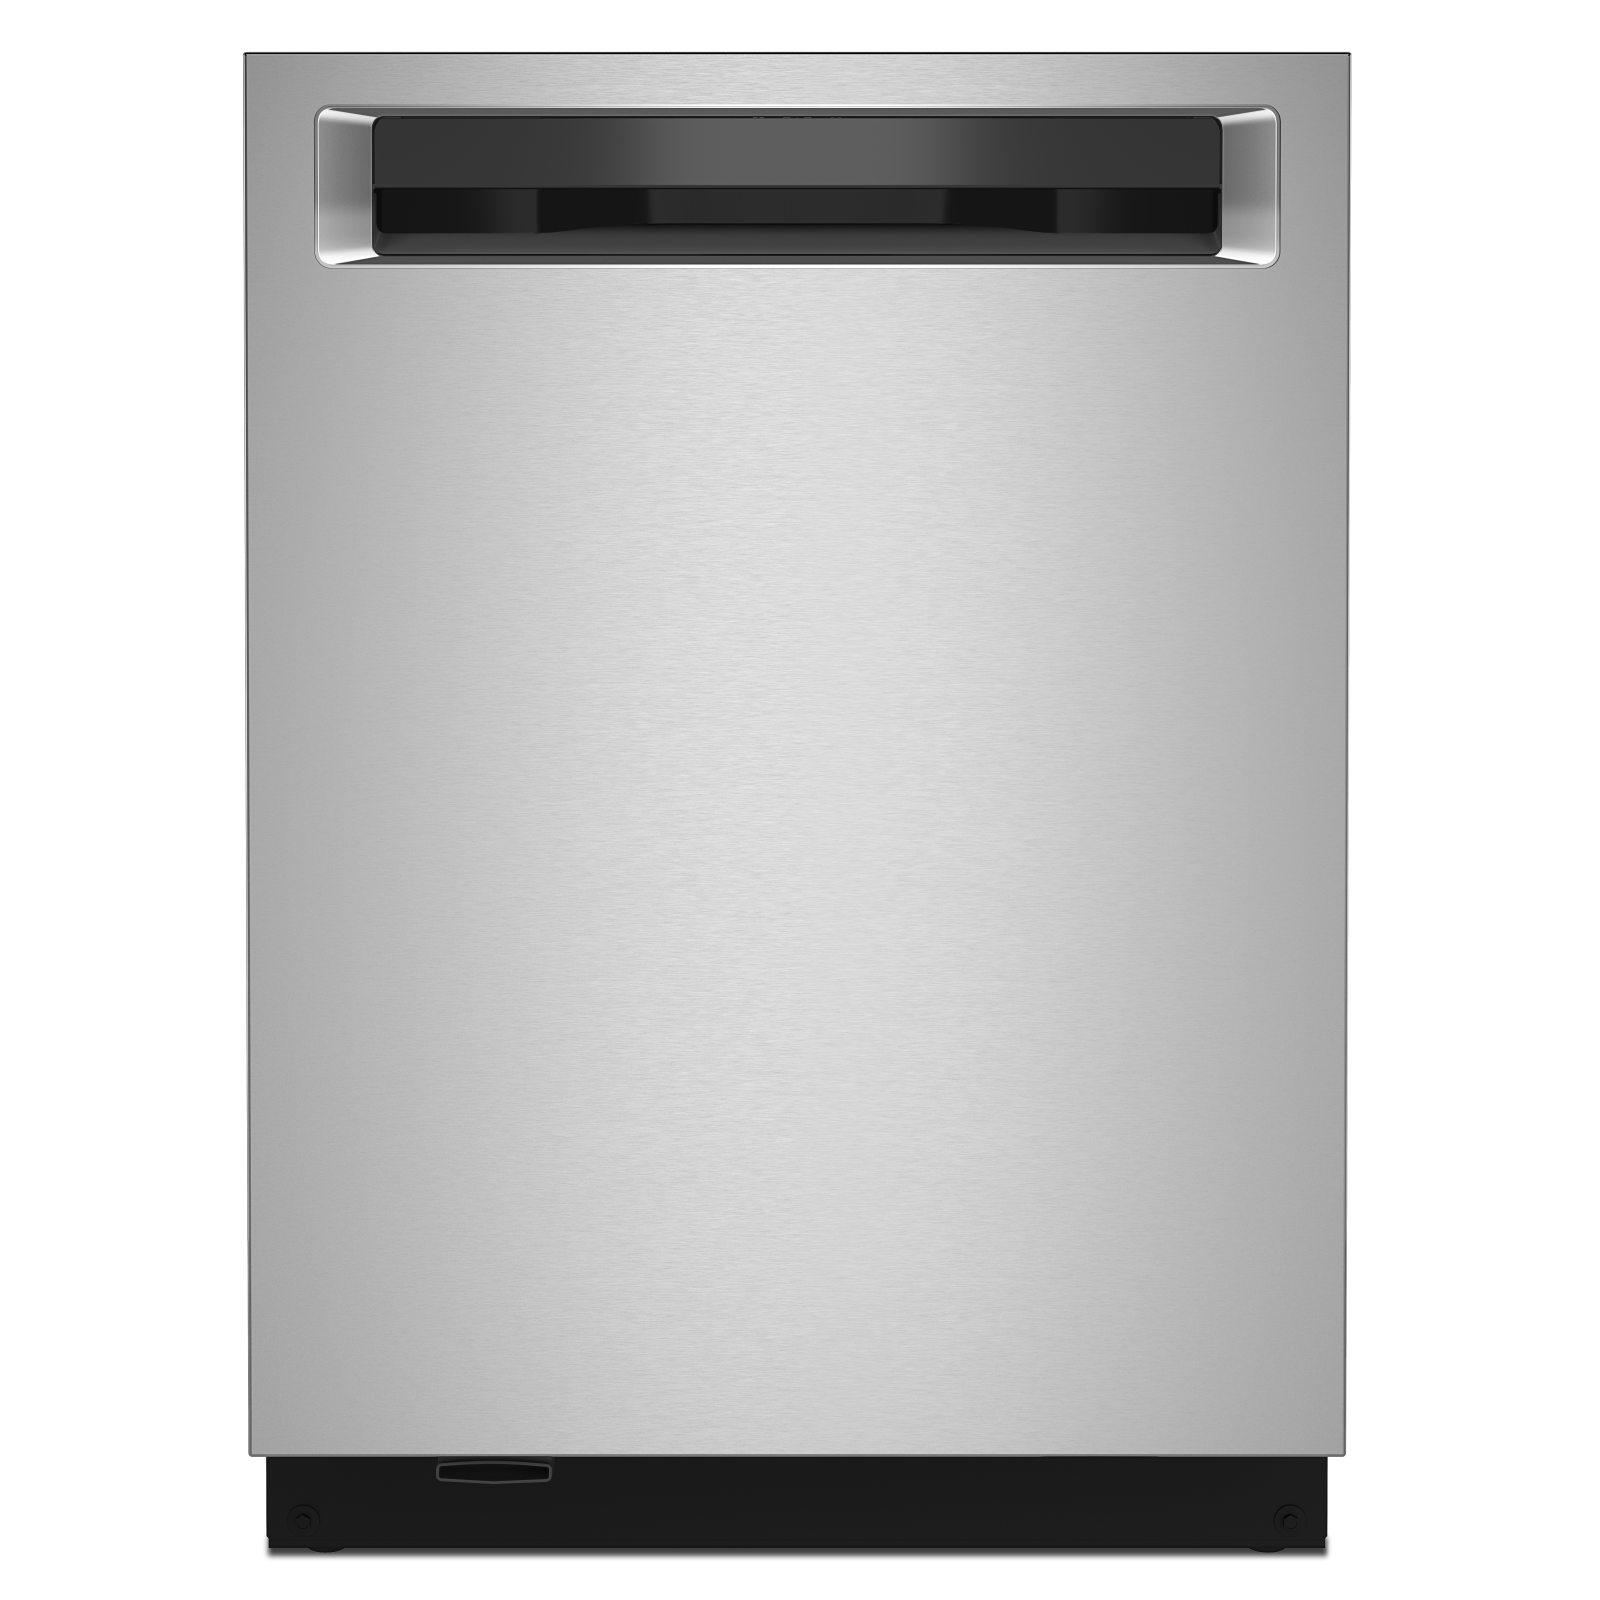 KitchenAid Dishwasher in Stainless Steel color showcased by Corbeil Electro Store